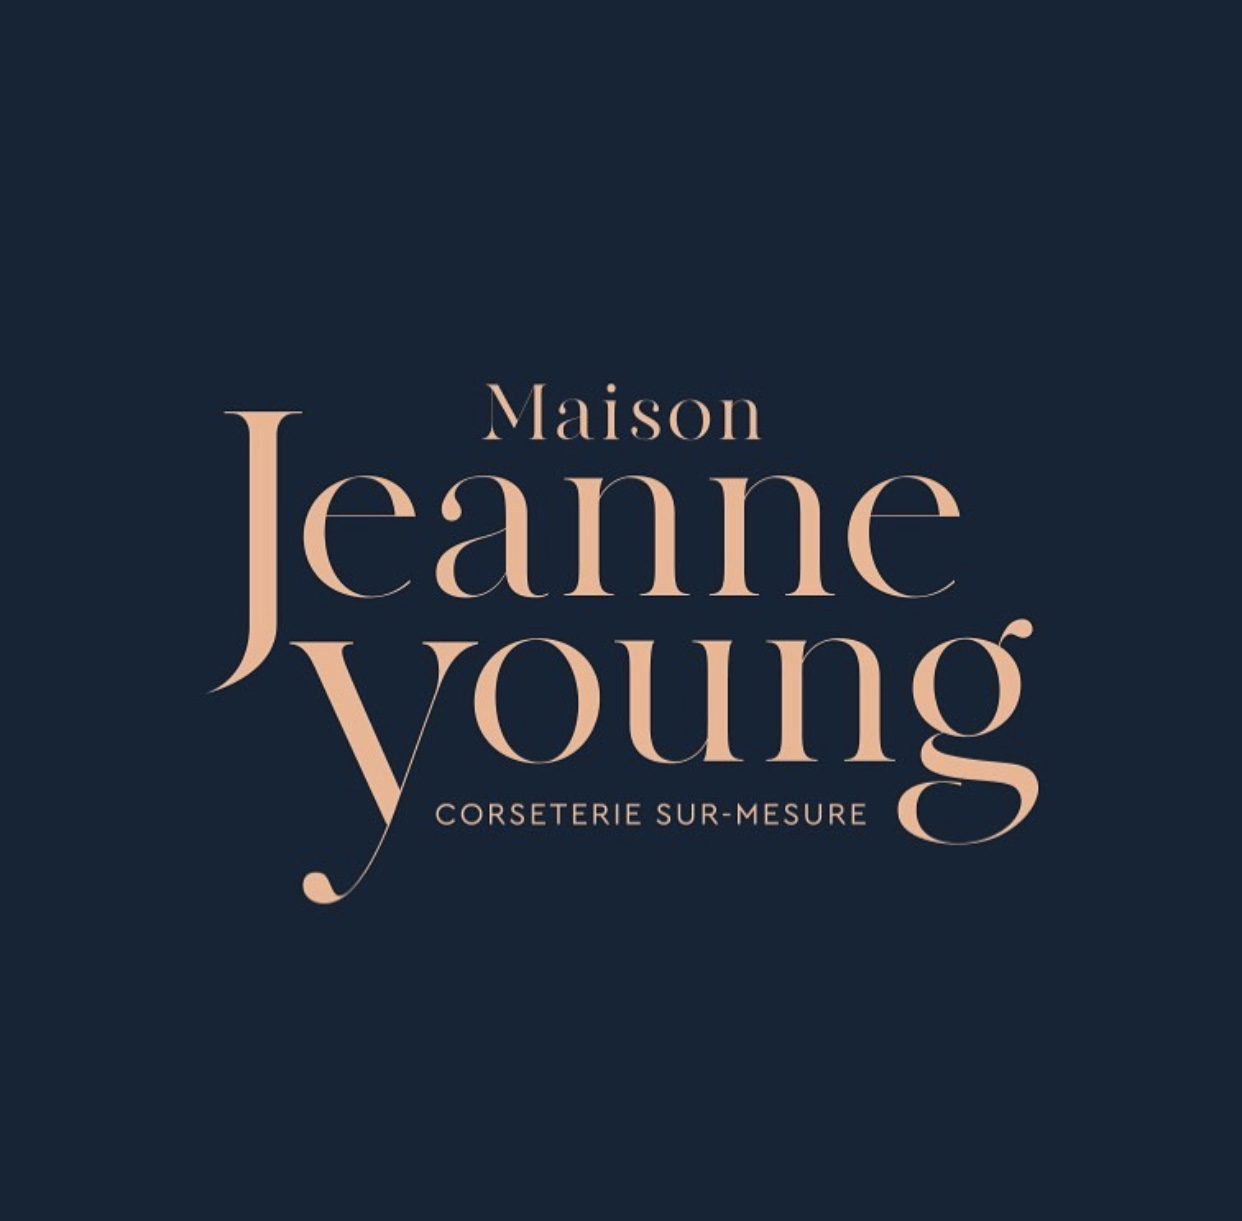 Maison Jeanne Young